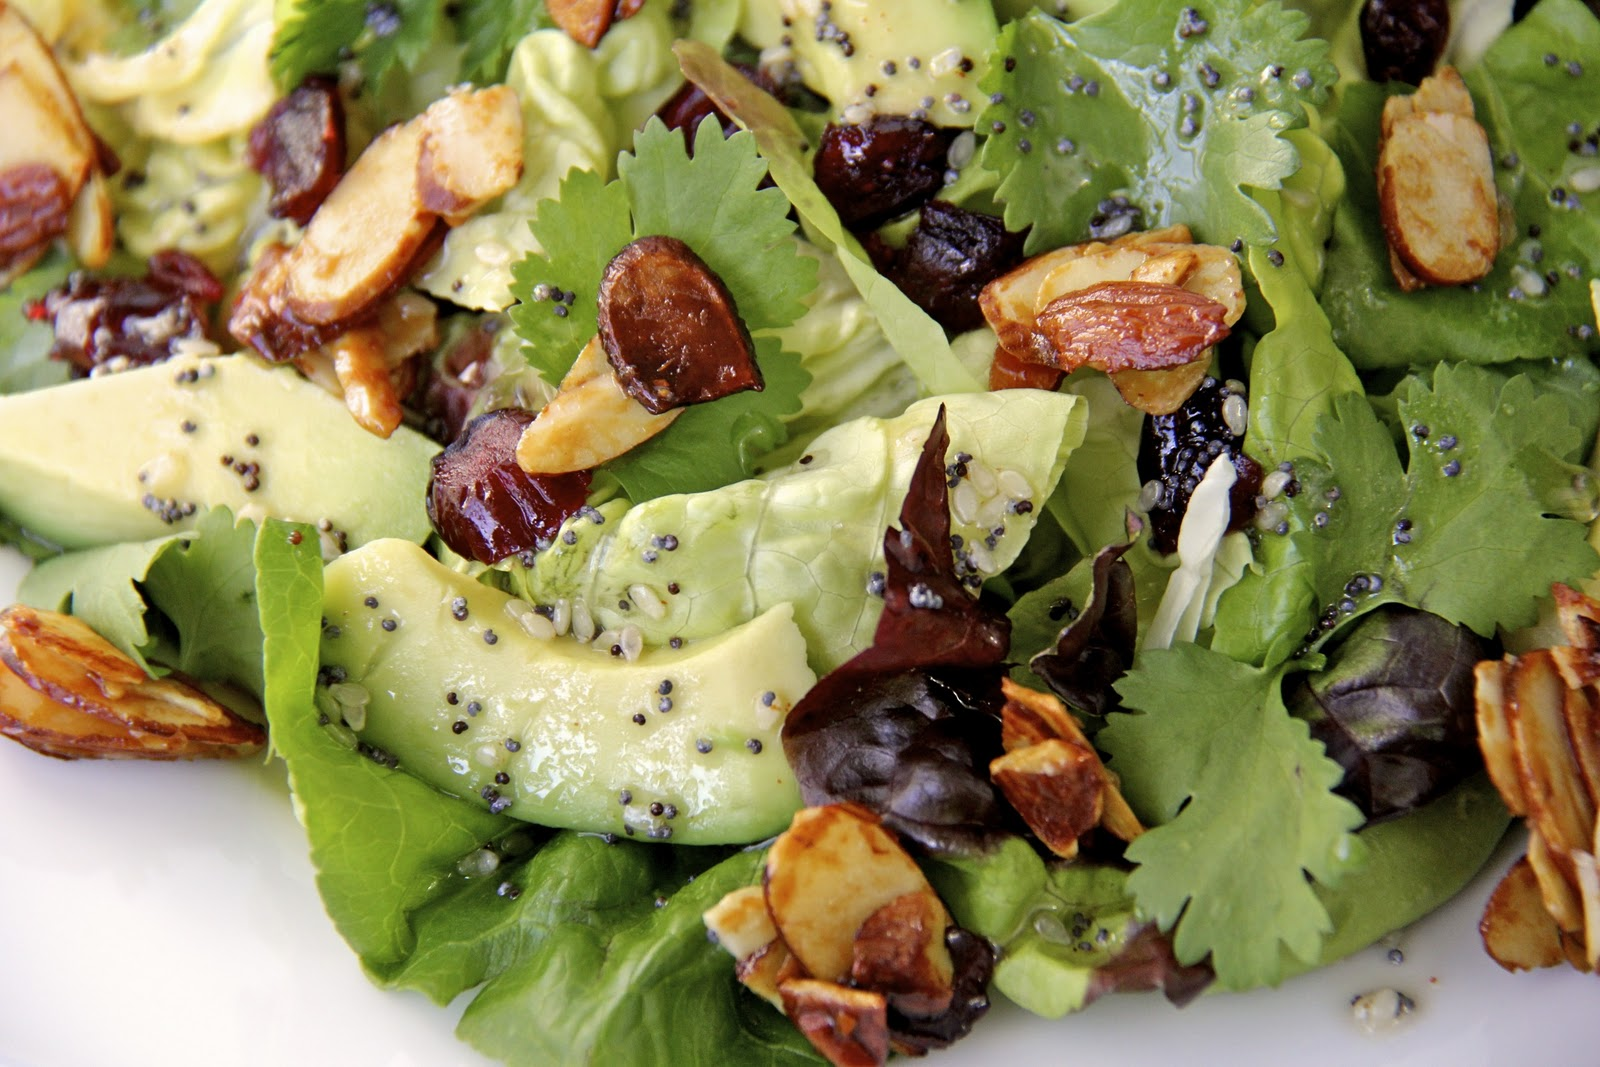 Avocado-Cranberry Salad